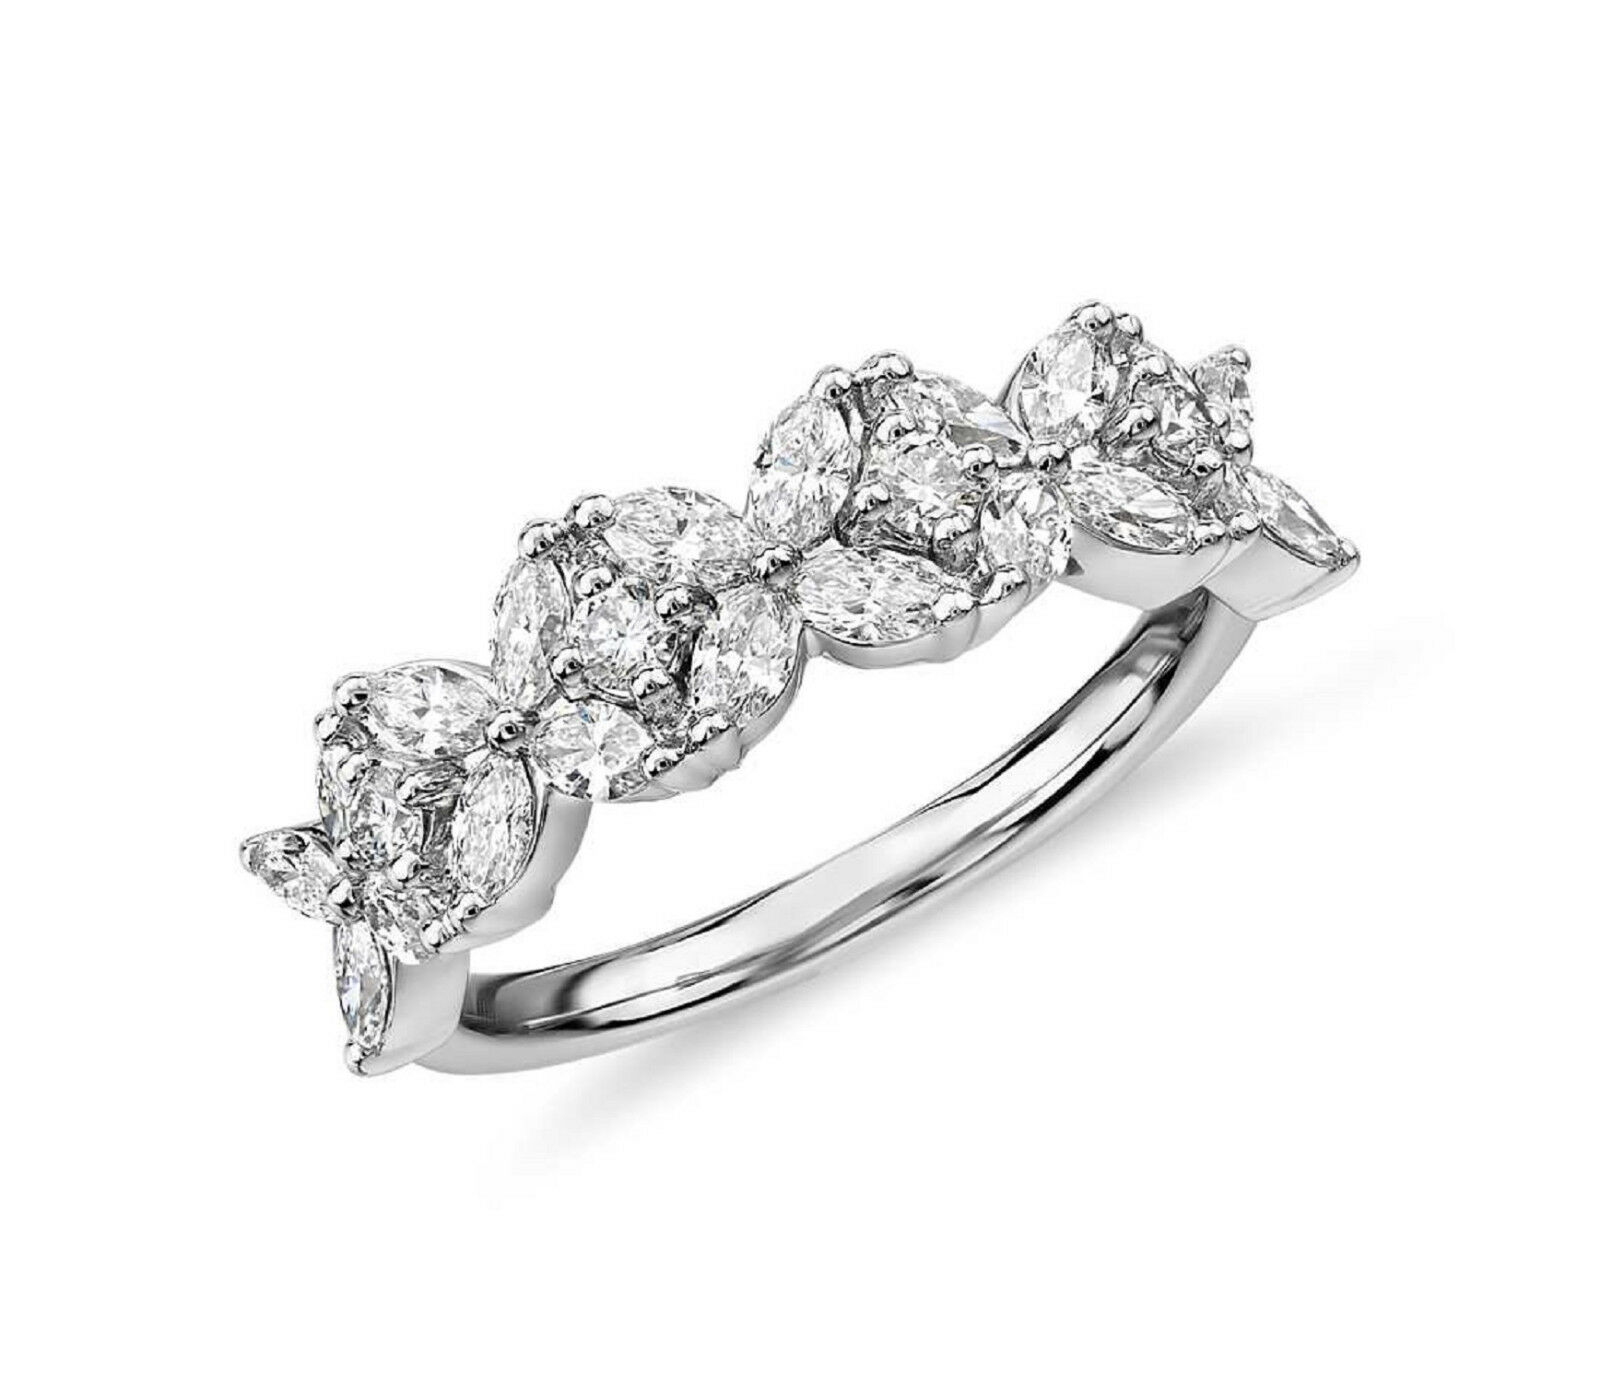 Christmas Special 2 3 Monique Lhuillier Cherie Marquise Diamond Anniversary Ring